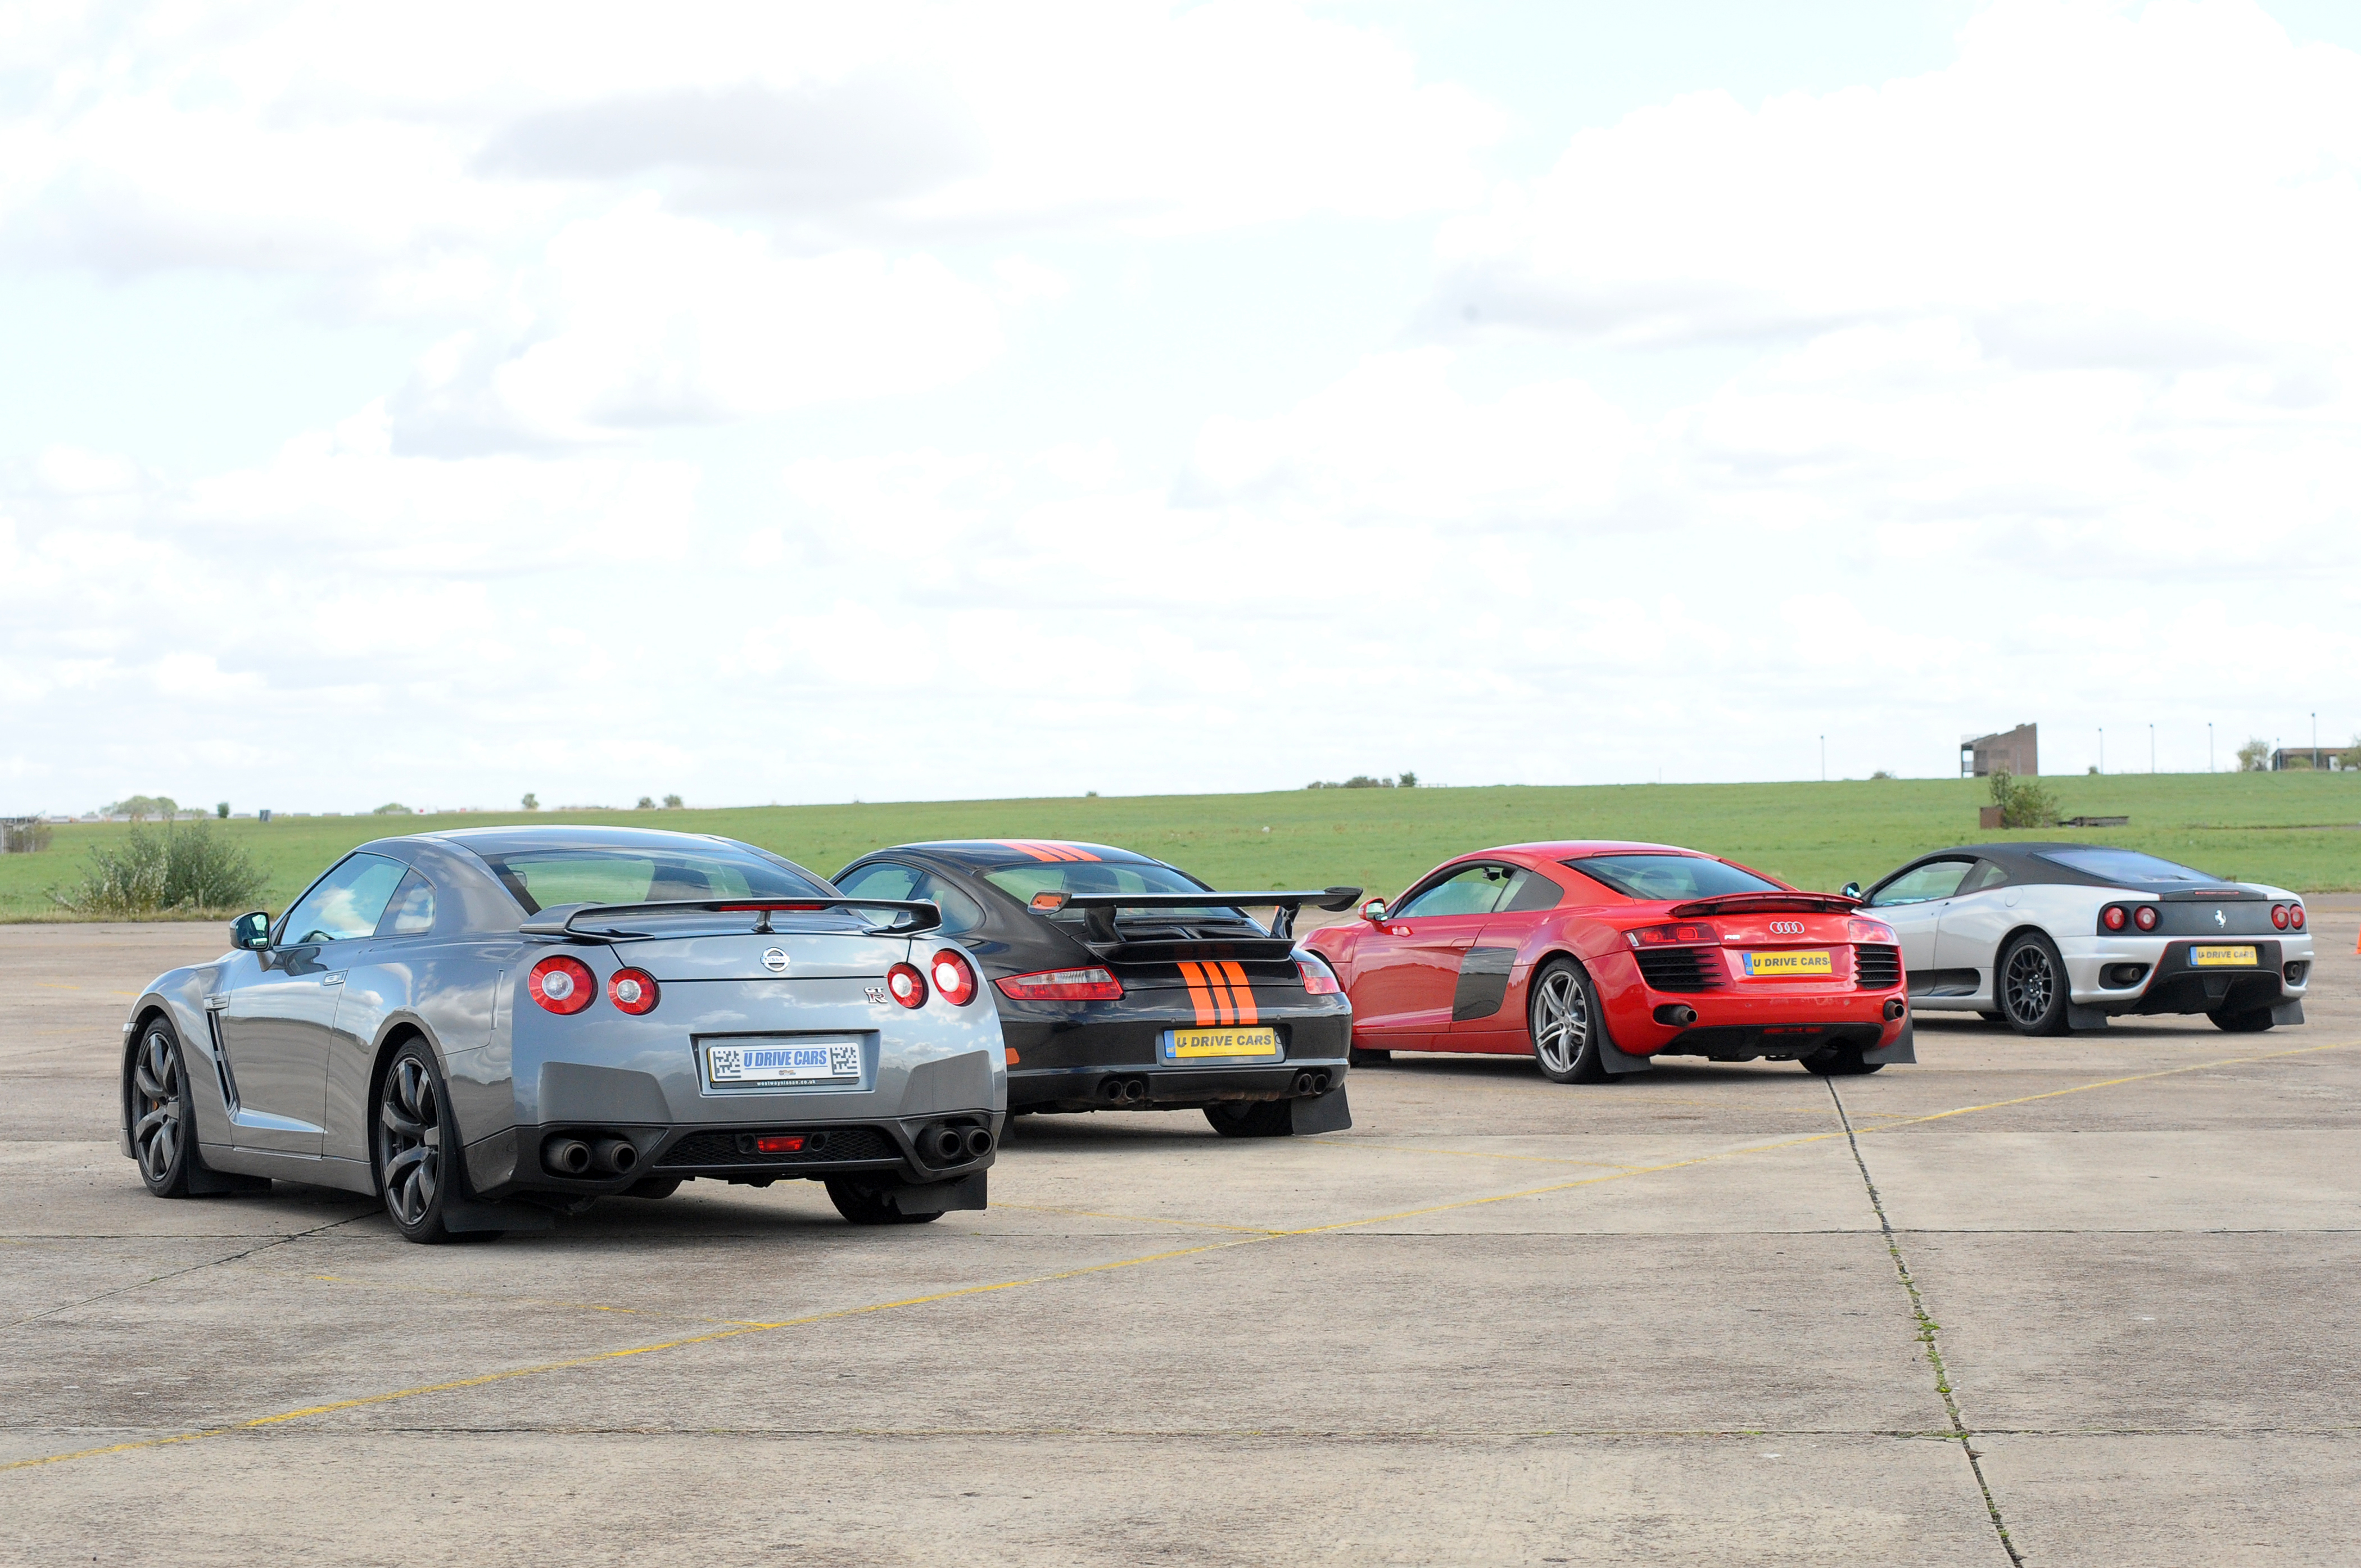 Super cars line up rear.jpg